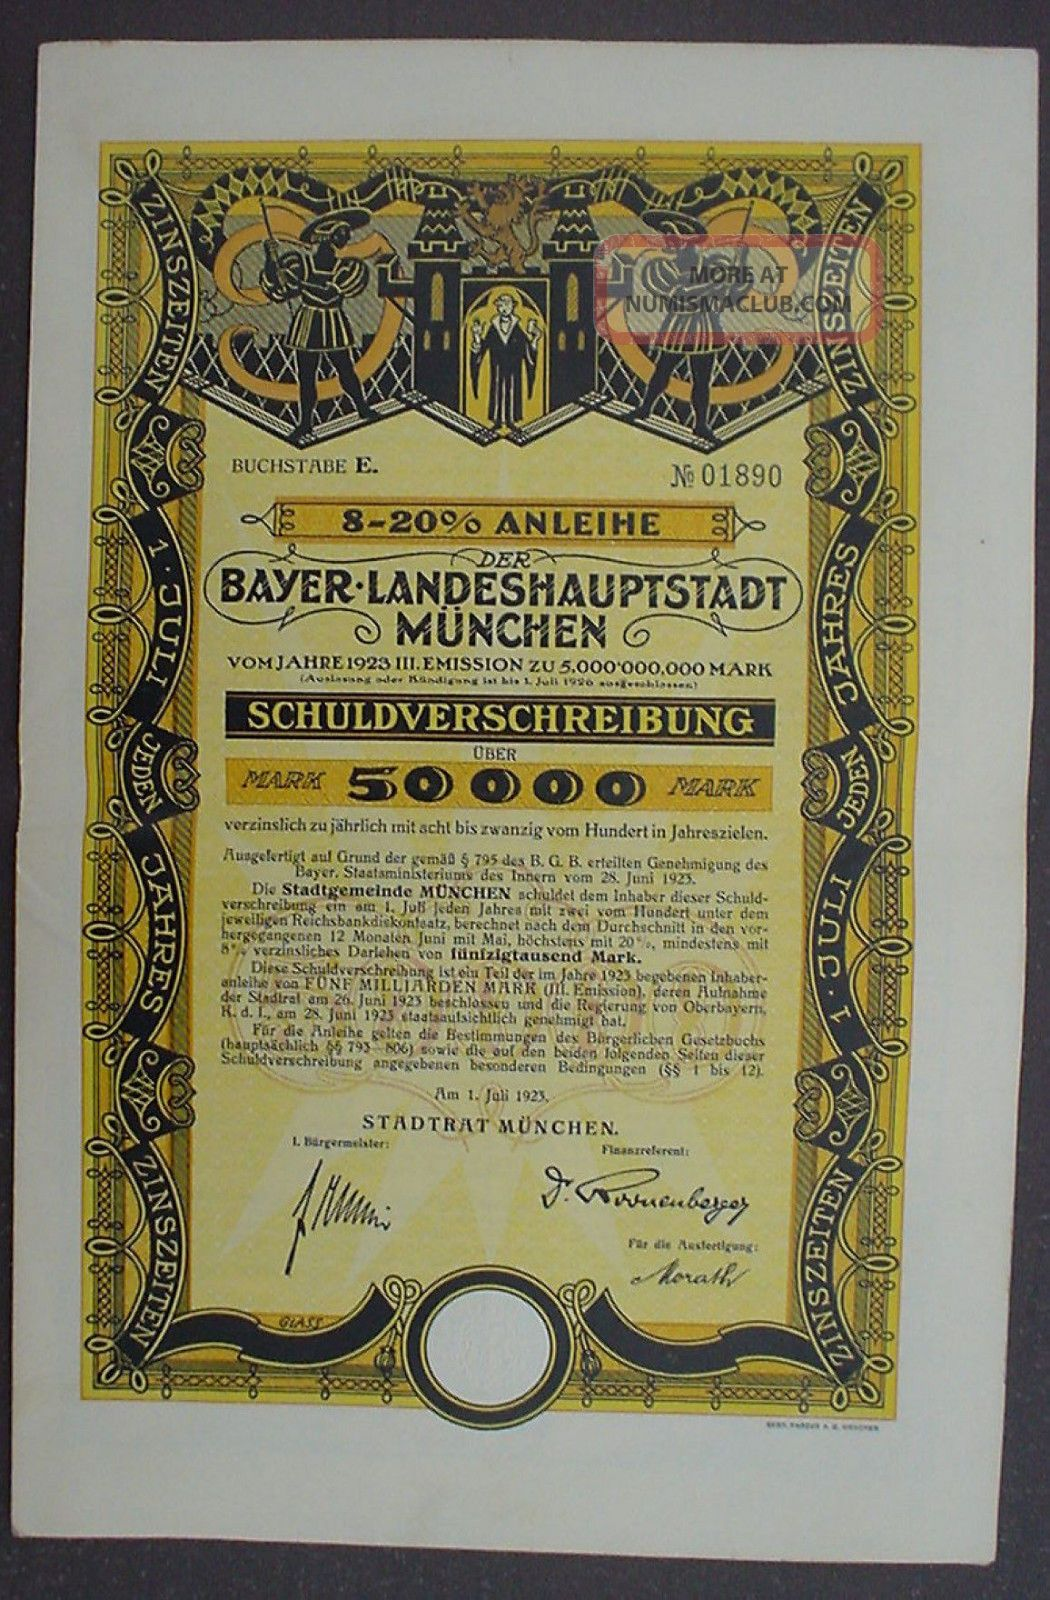 City Of Munich 50000 Mark 8 - 20 Bond To Bearer Uncacelled,  Complete Coupon Sheet Stocks & Bonds, Scripophily photo